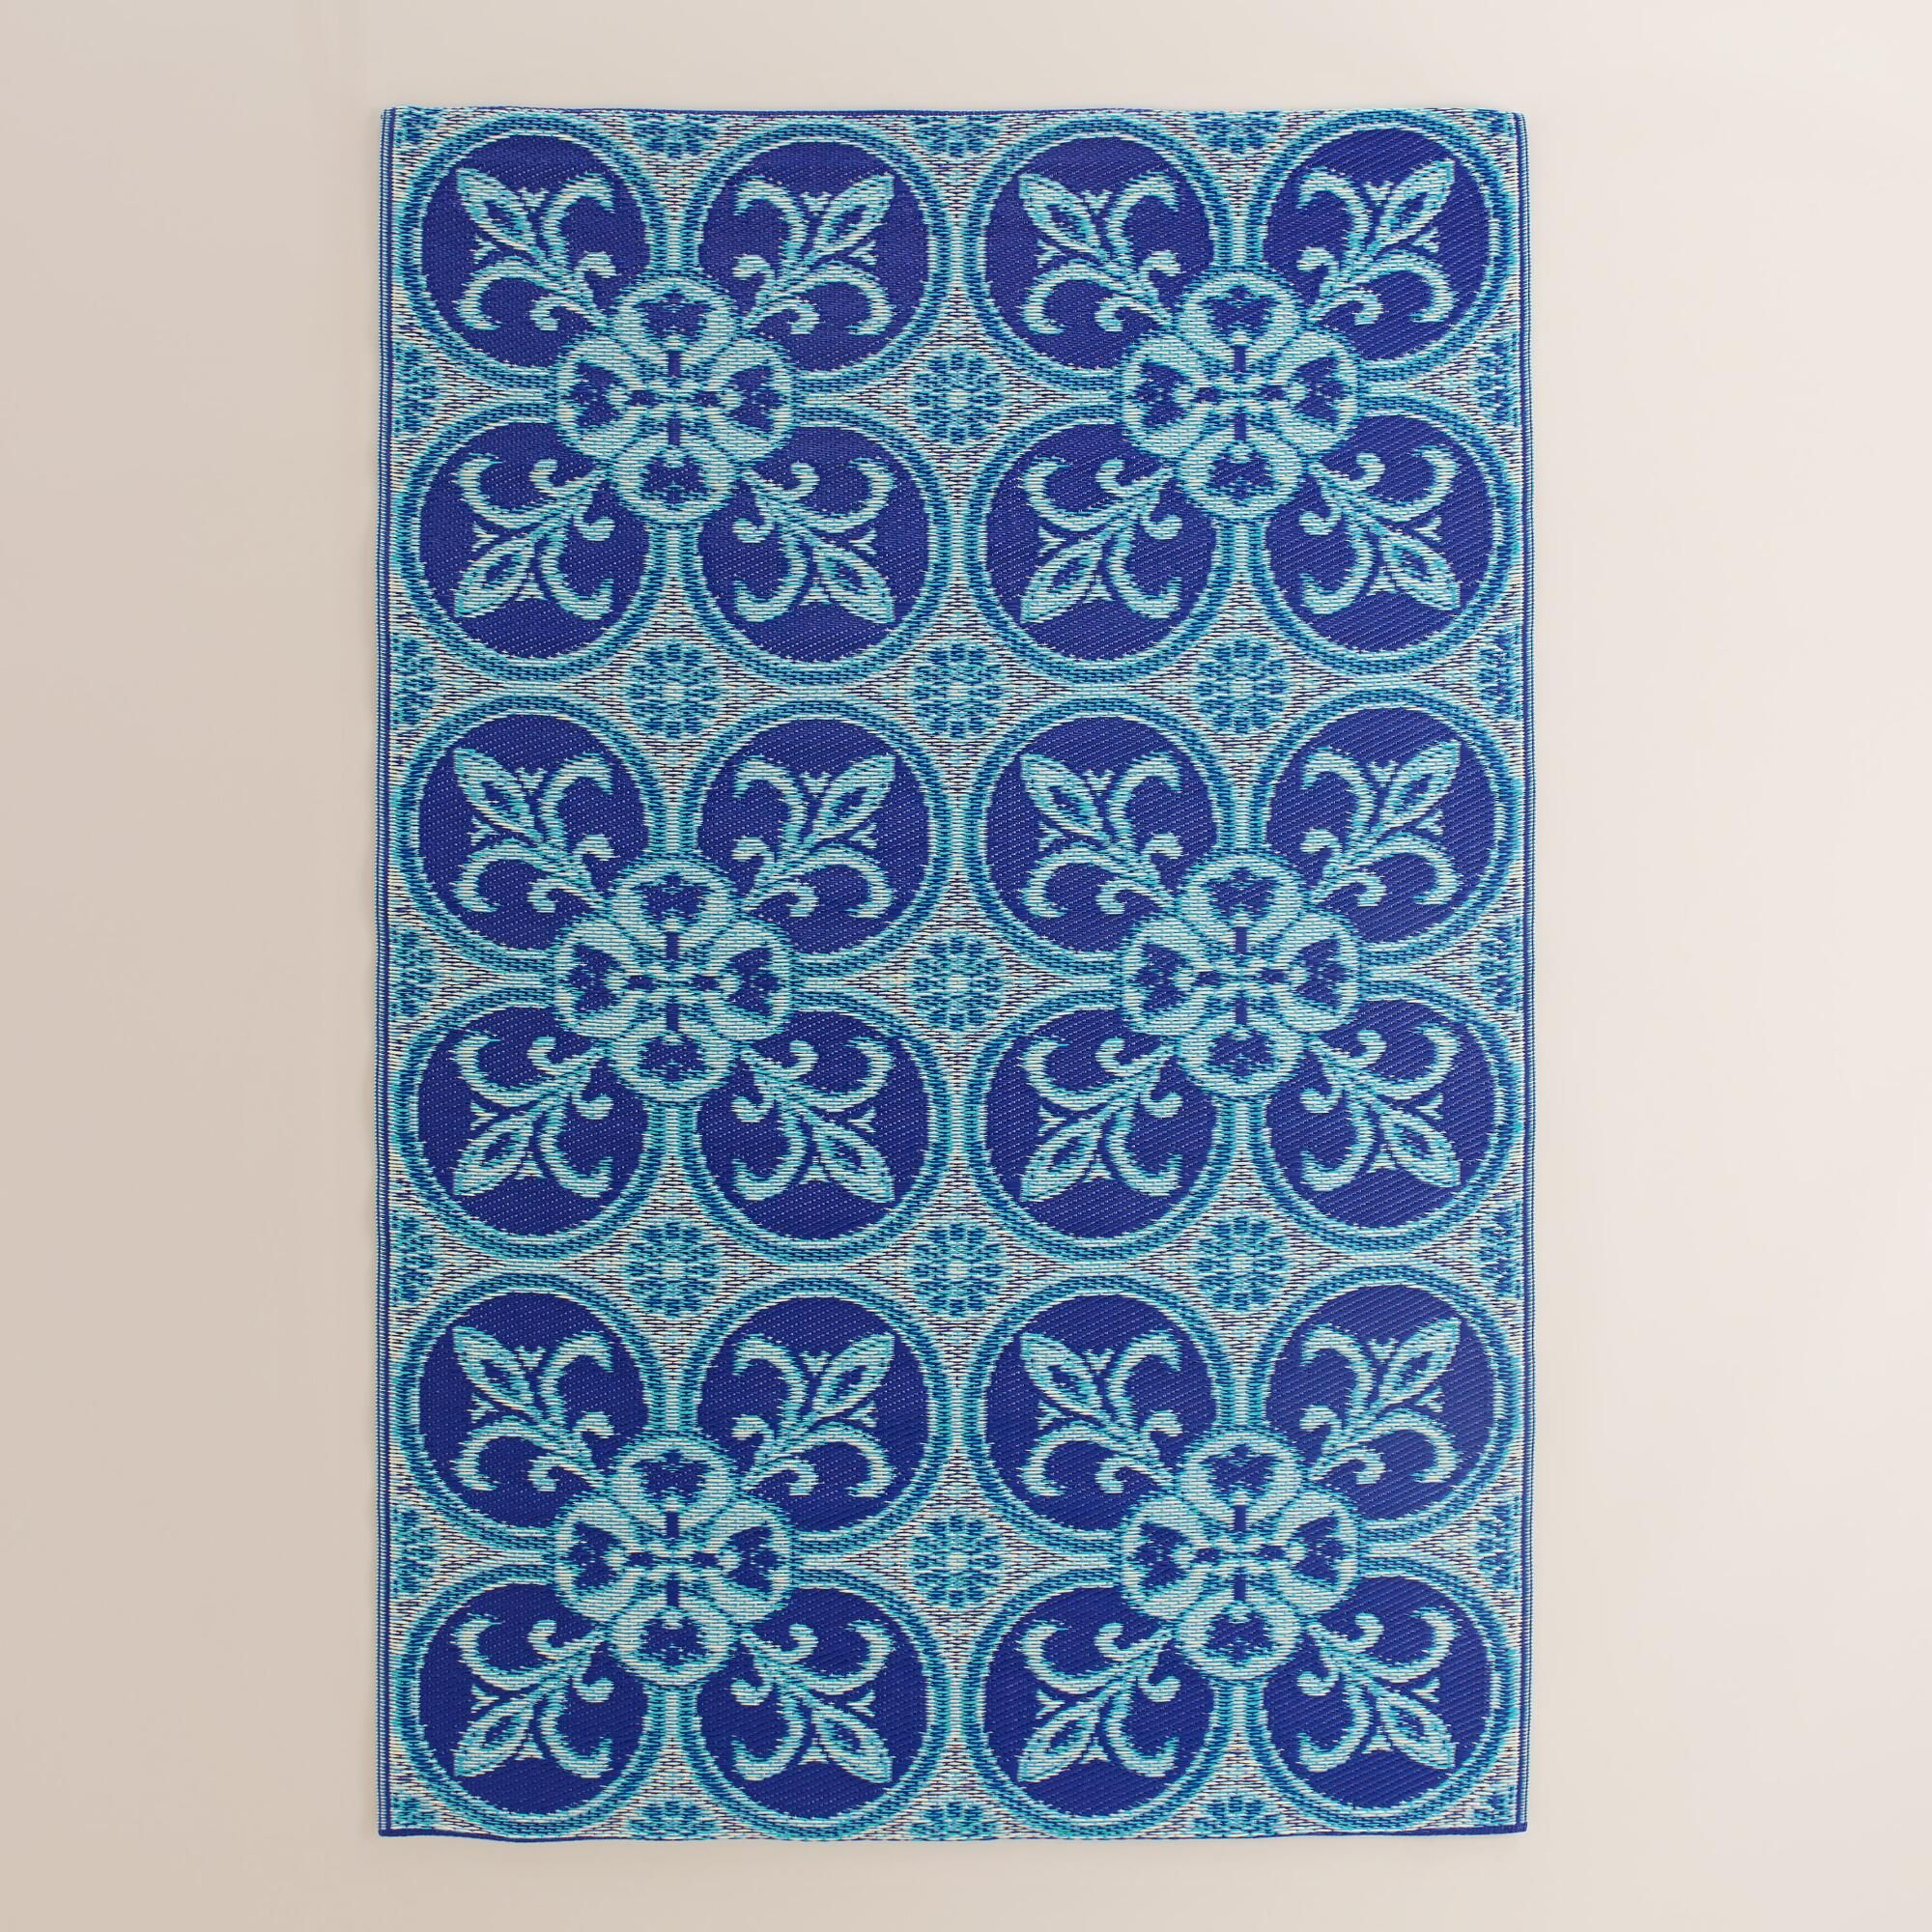 4x6 Blue and White Tile Reversible Rio Floor Mat | Soothing colors ...